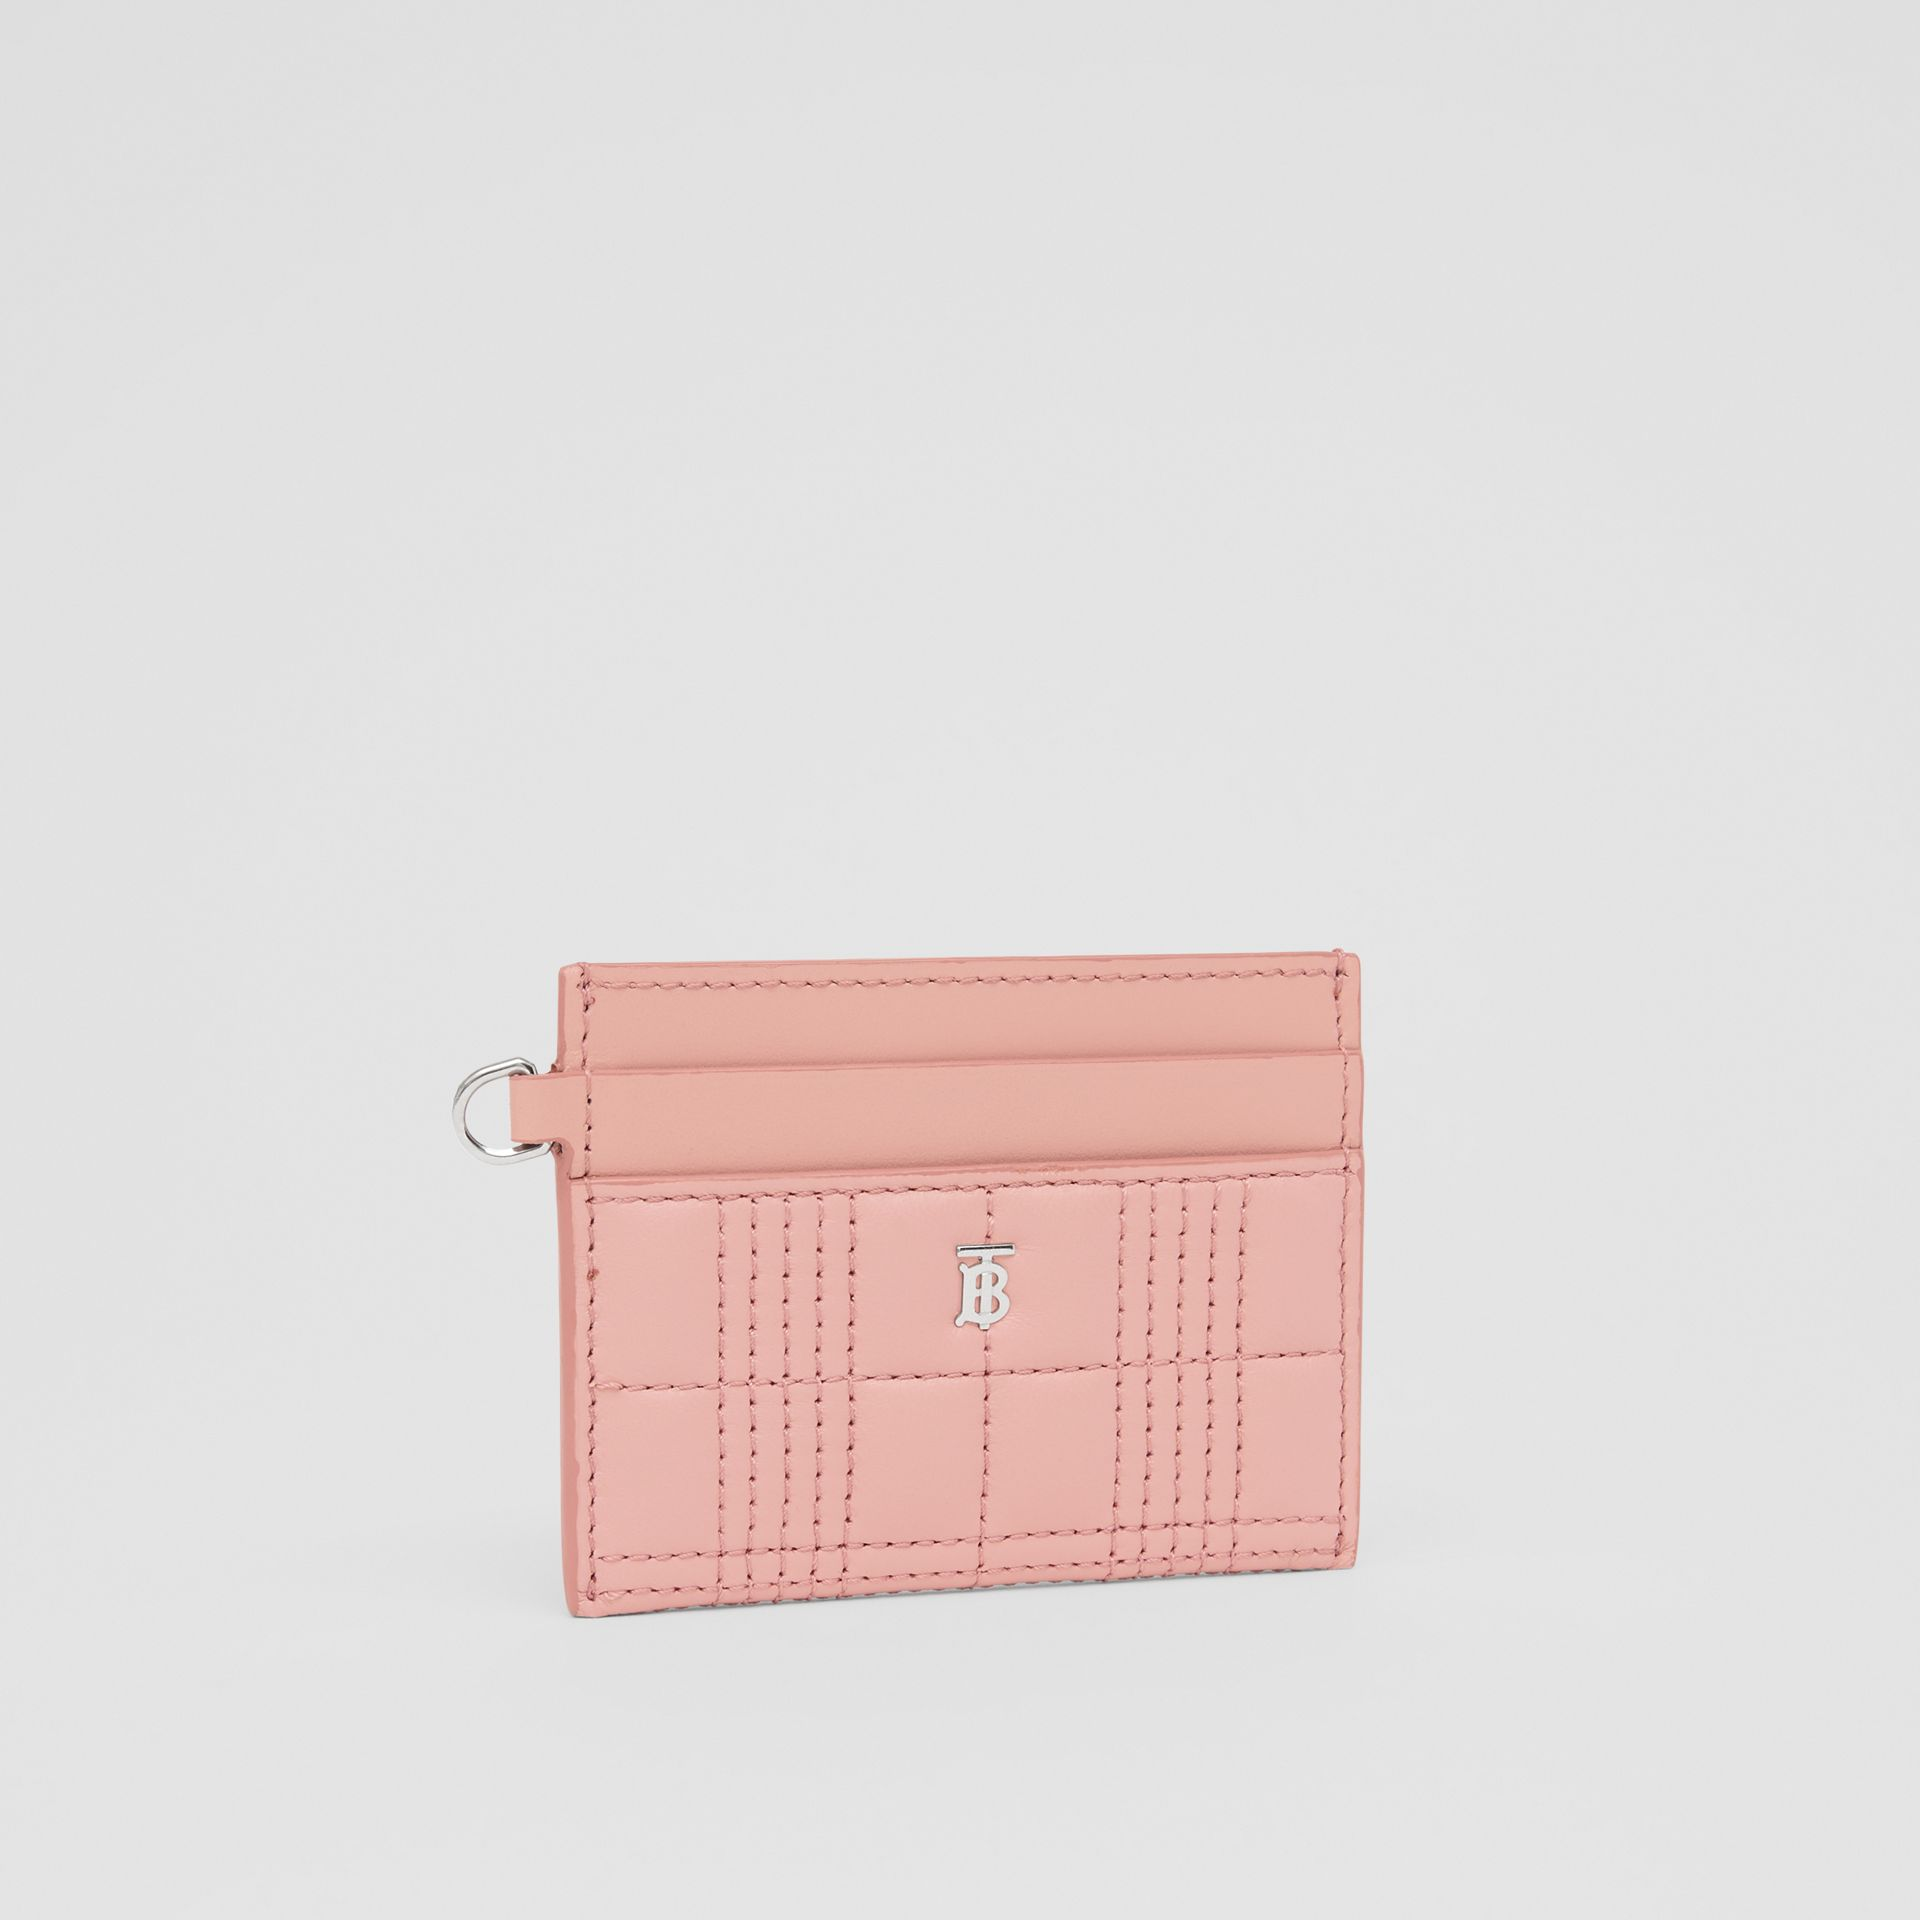 Monogram Motif Quilted Lambskin Card Case in Blush Pink - Women | Burberry - gallery image 3